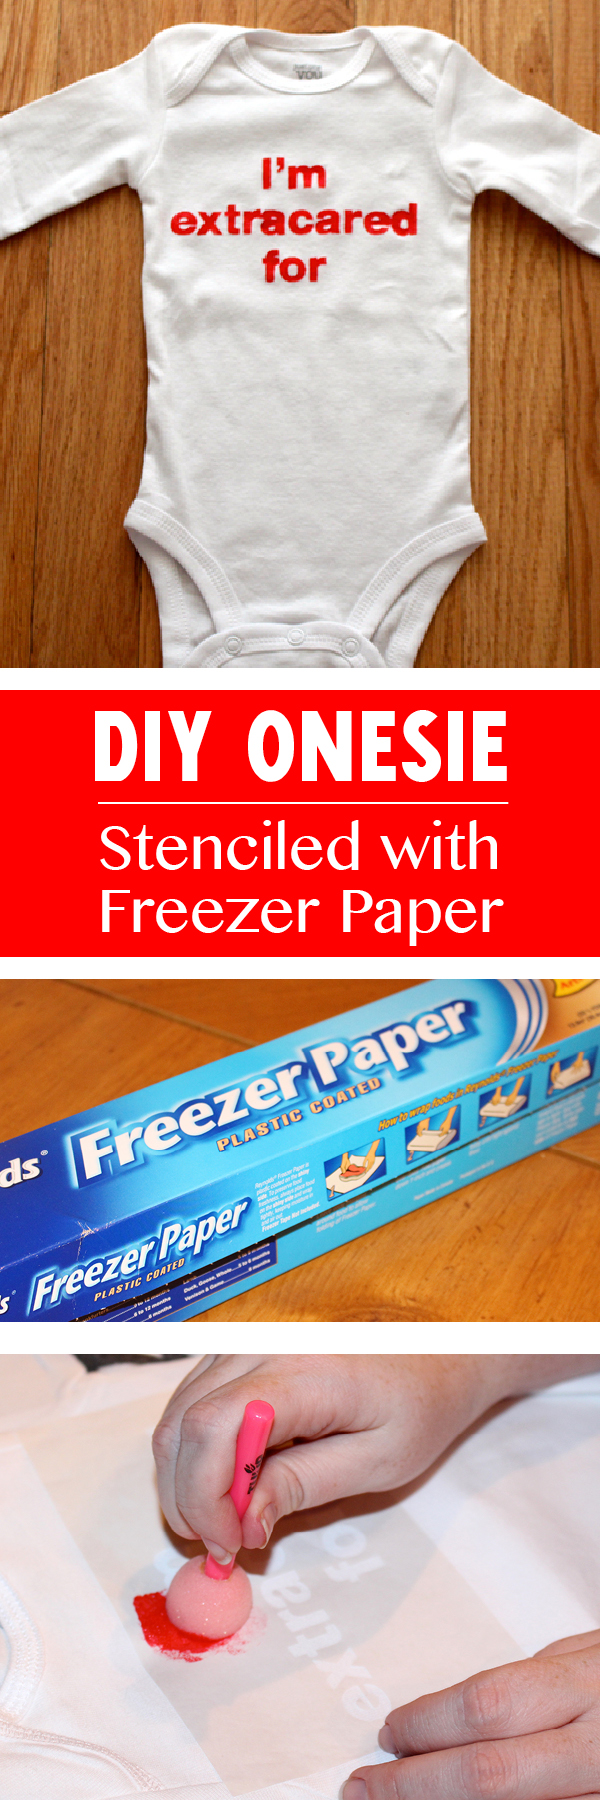 DIY Stenciled Onesie